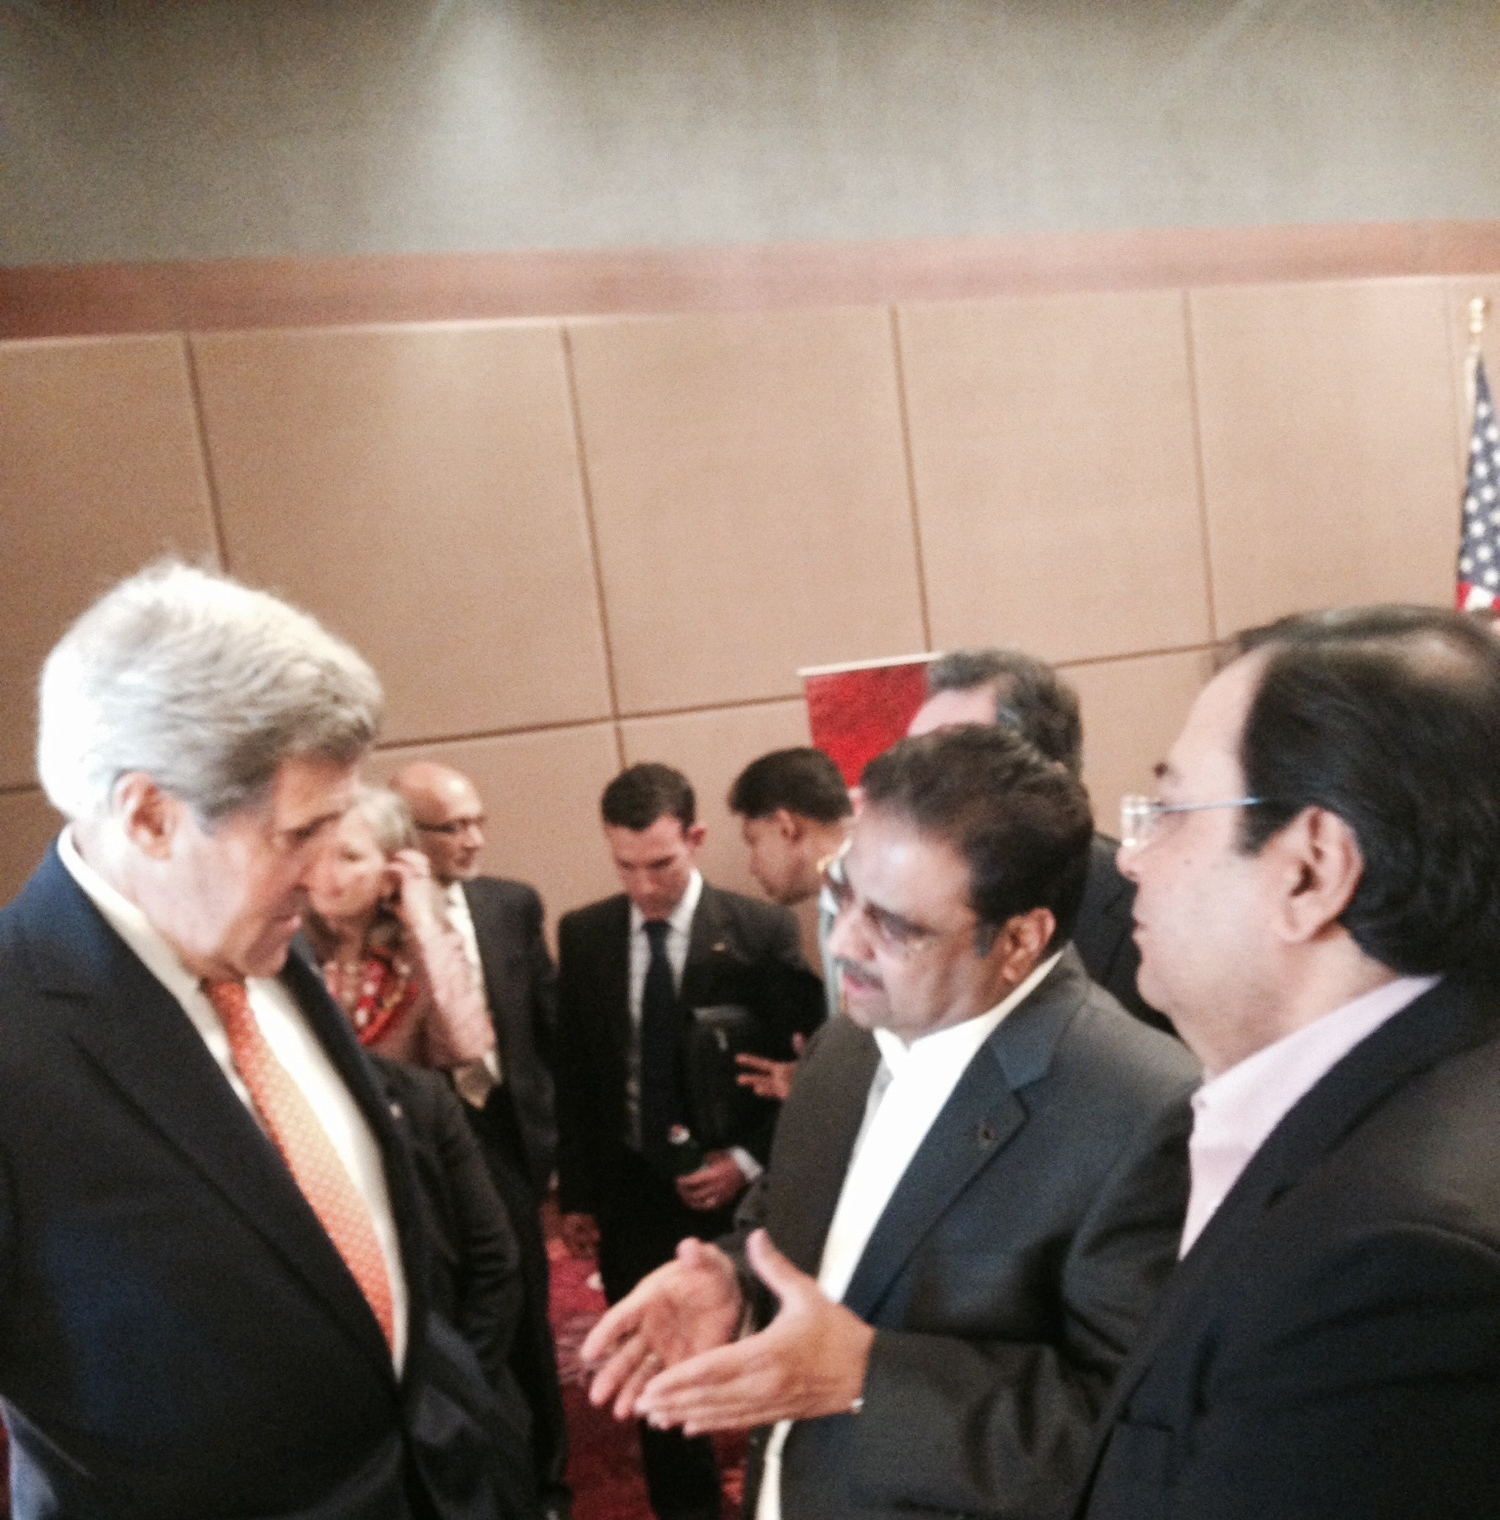 Suresh Nichani, Vice Chairman of RootCorp (right)with Honorable John Kerry, United States Secretary of State (left), and Mr. Danny Gaekwad (middle).